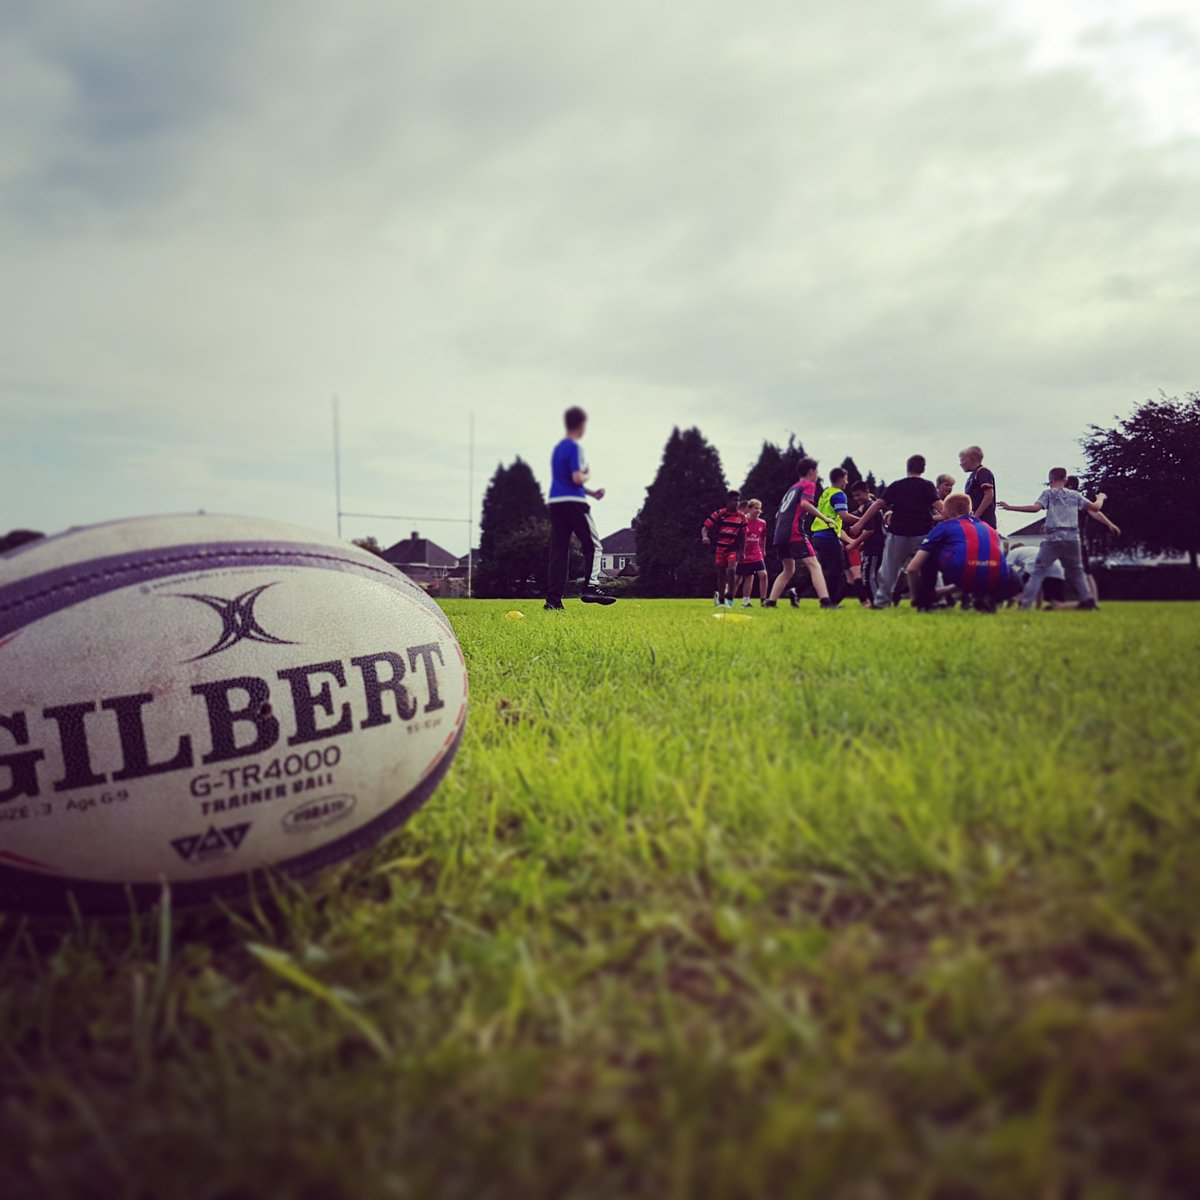 1st day with SOHK  &amp;  Intro to program, a look at what they want to achieve  intro to rugby w/ lots of games #rugby #charity #education<br>http://pic.twitter.com/a8gFmWvGoE